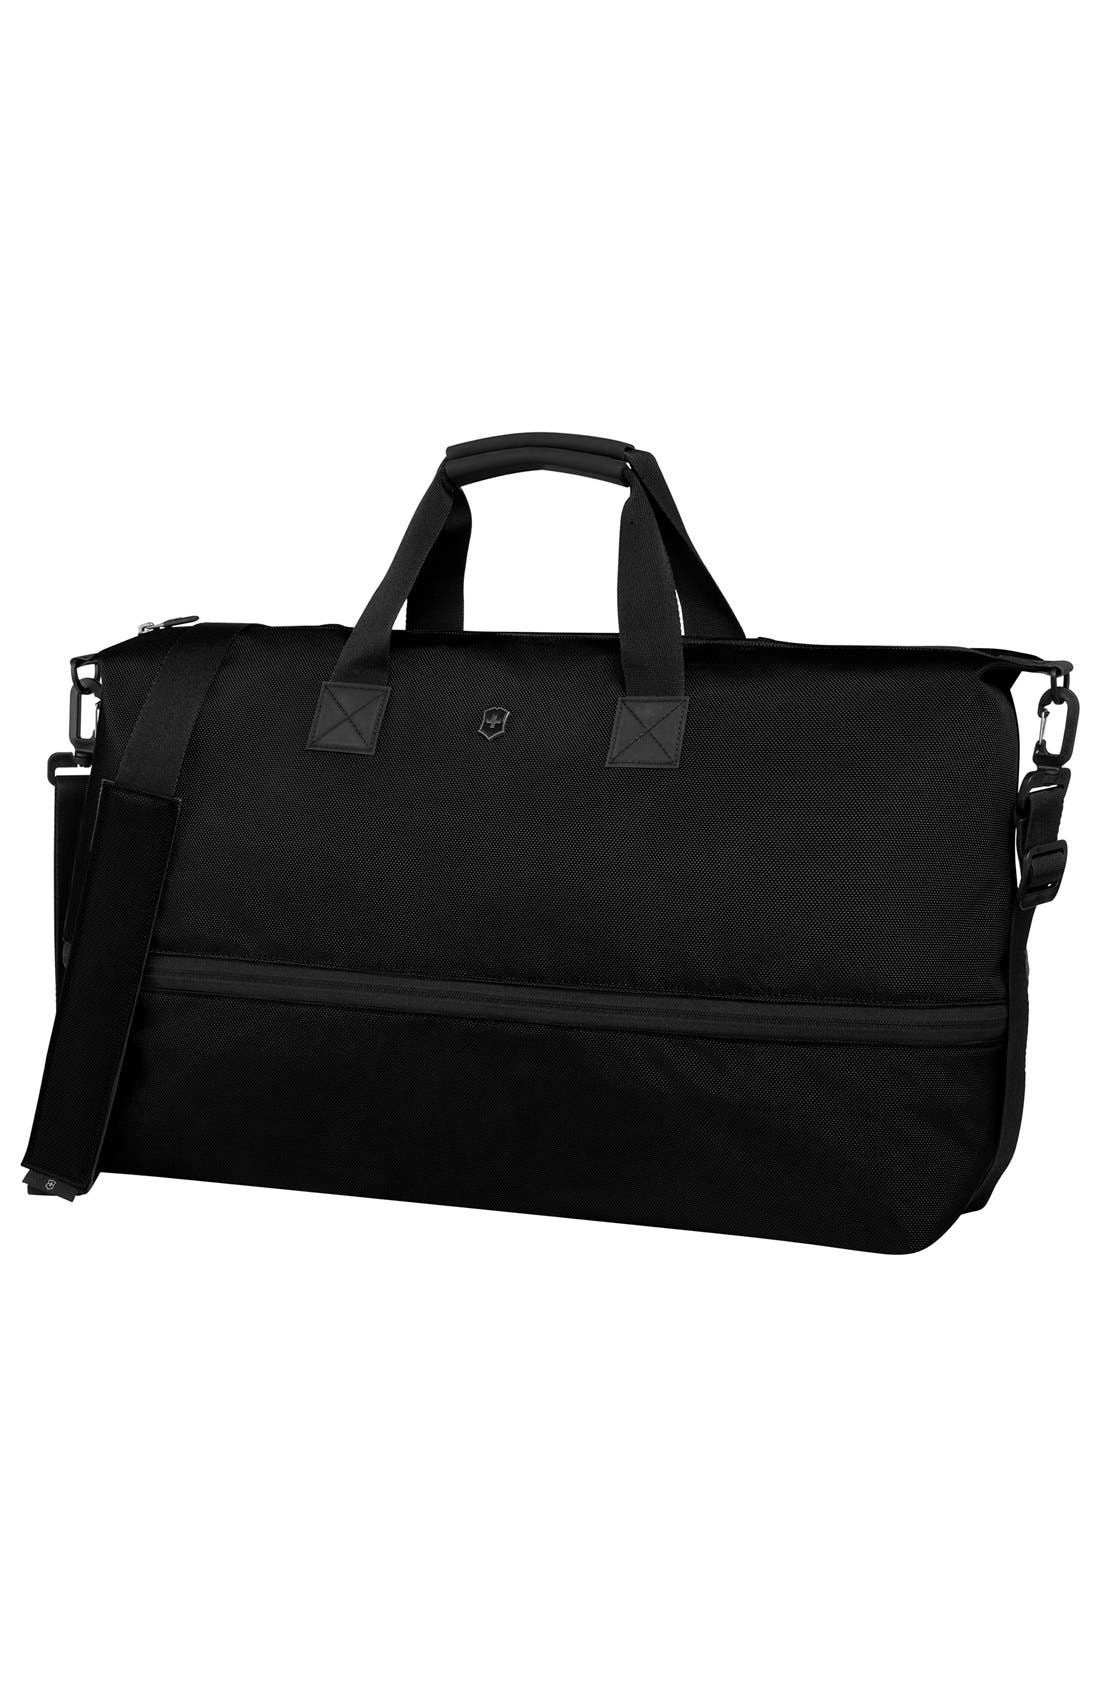 XL Duffel Bag,                             Main thumbnail 1, color,                             Black